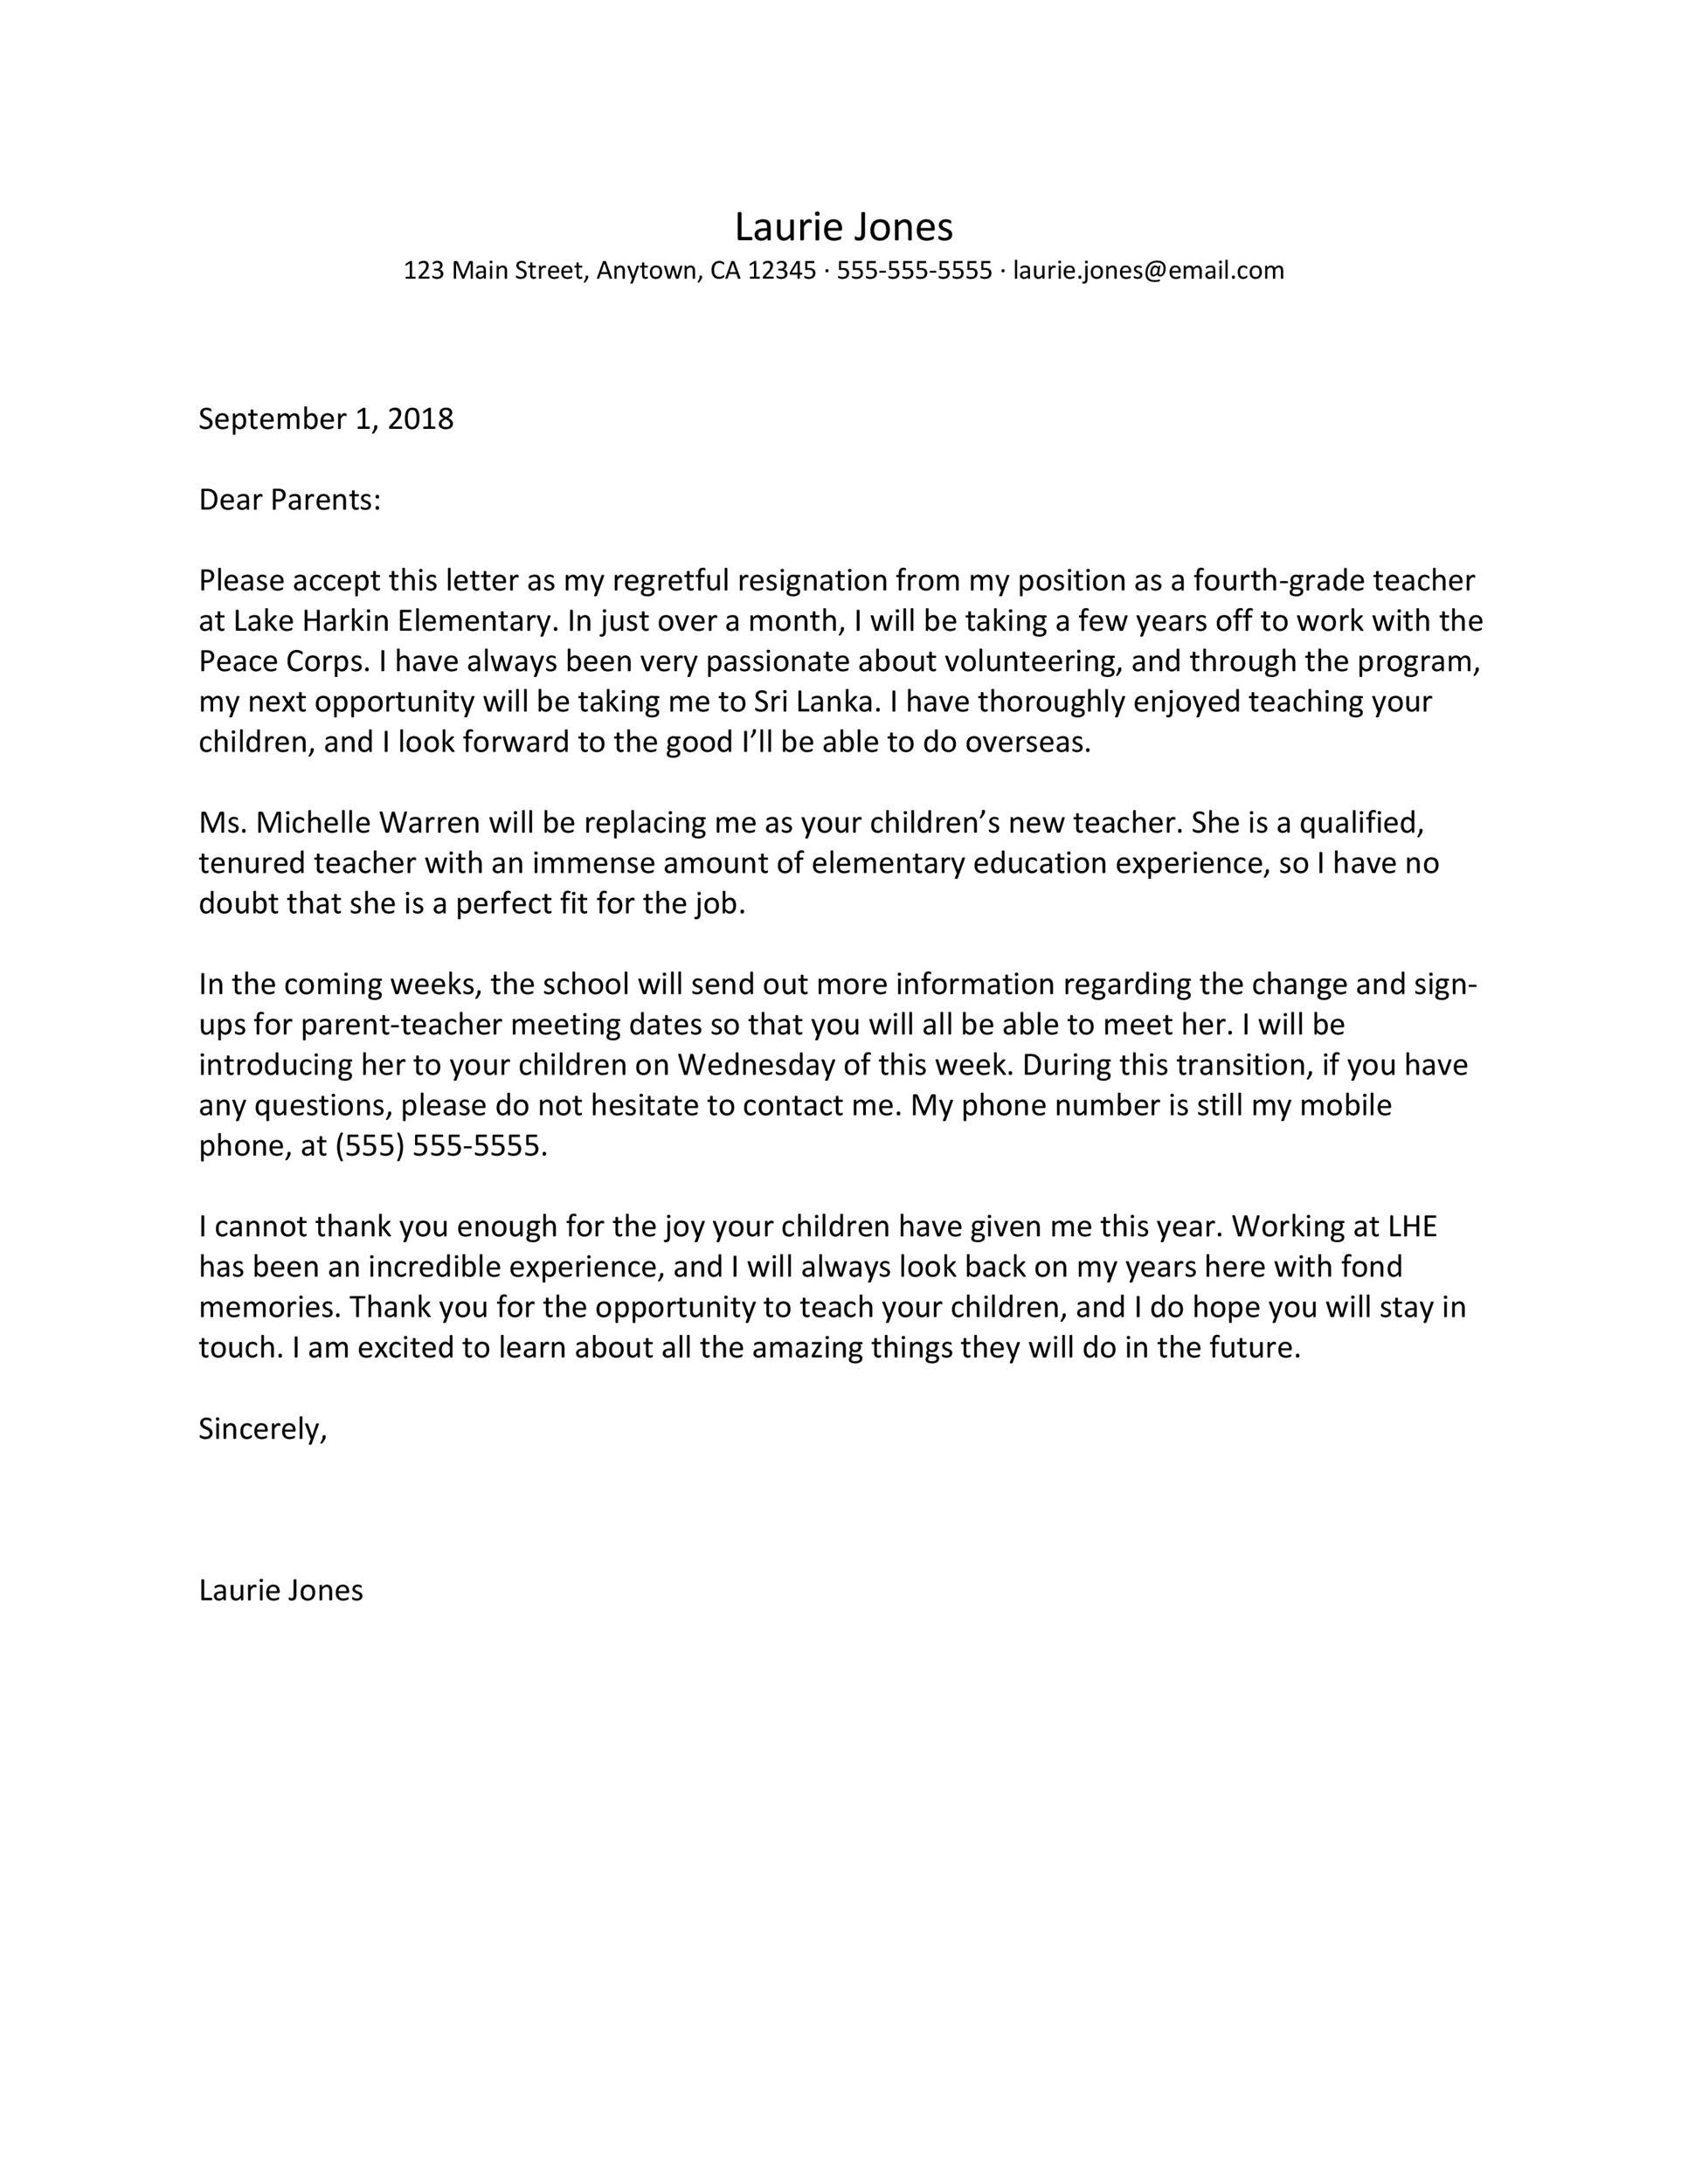 Free teacher resignation letter 40